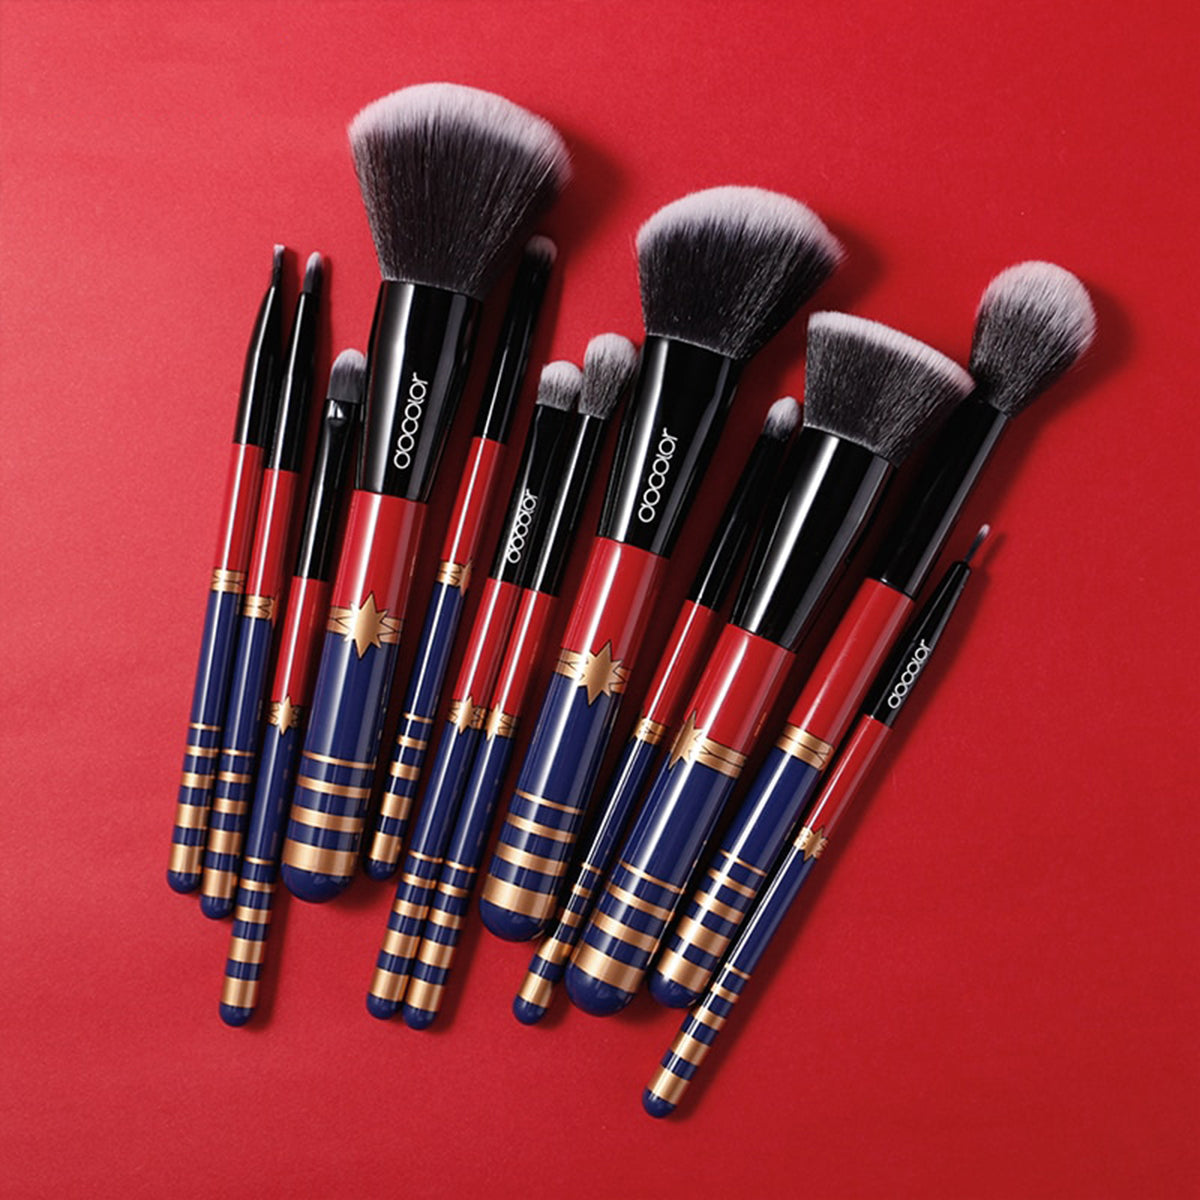 12 Pcs Professional Makeup Brushes Set